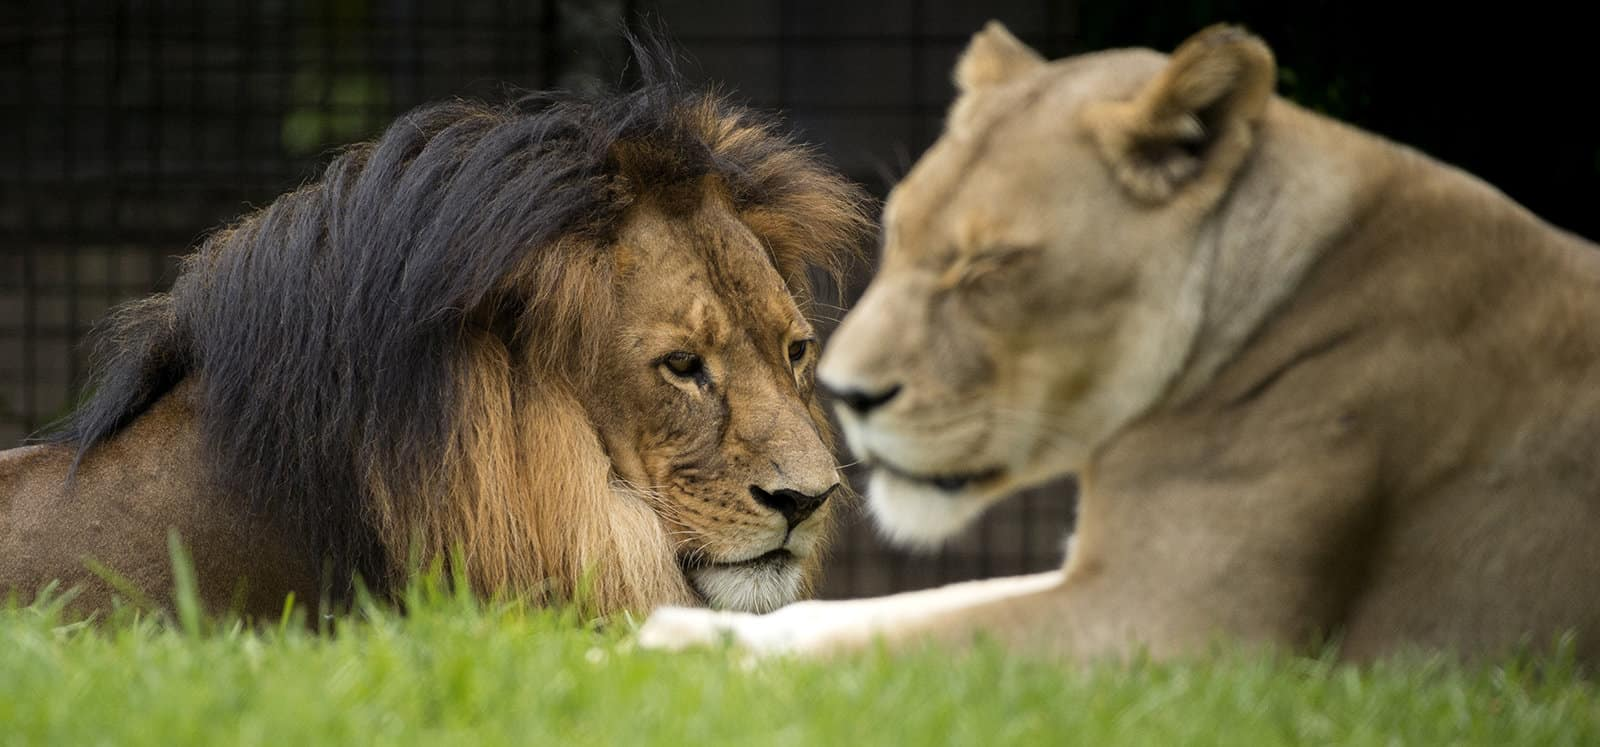 Male and female African Lions at Adelaide Zoo